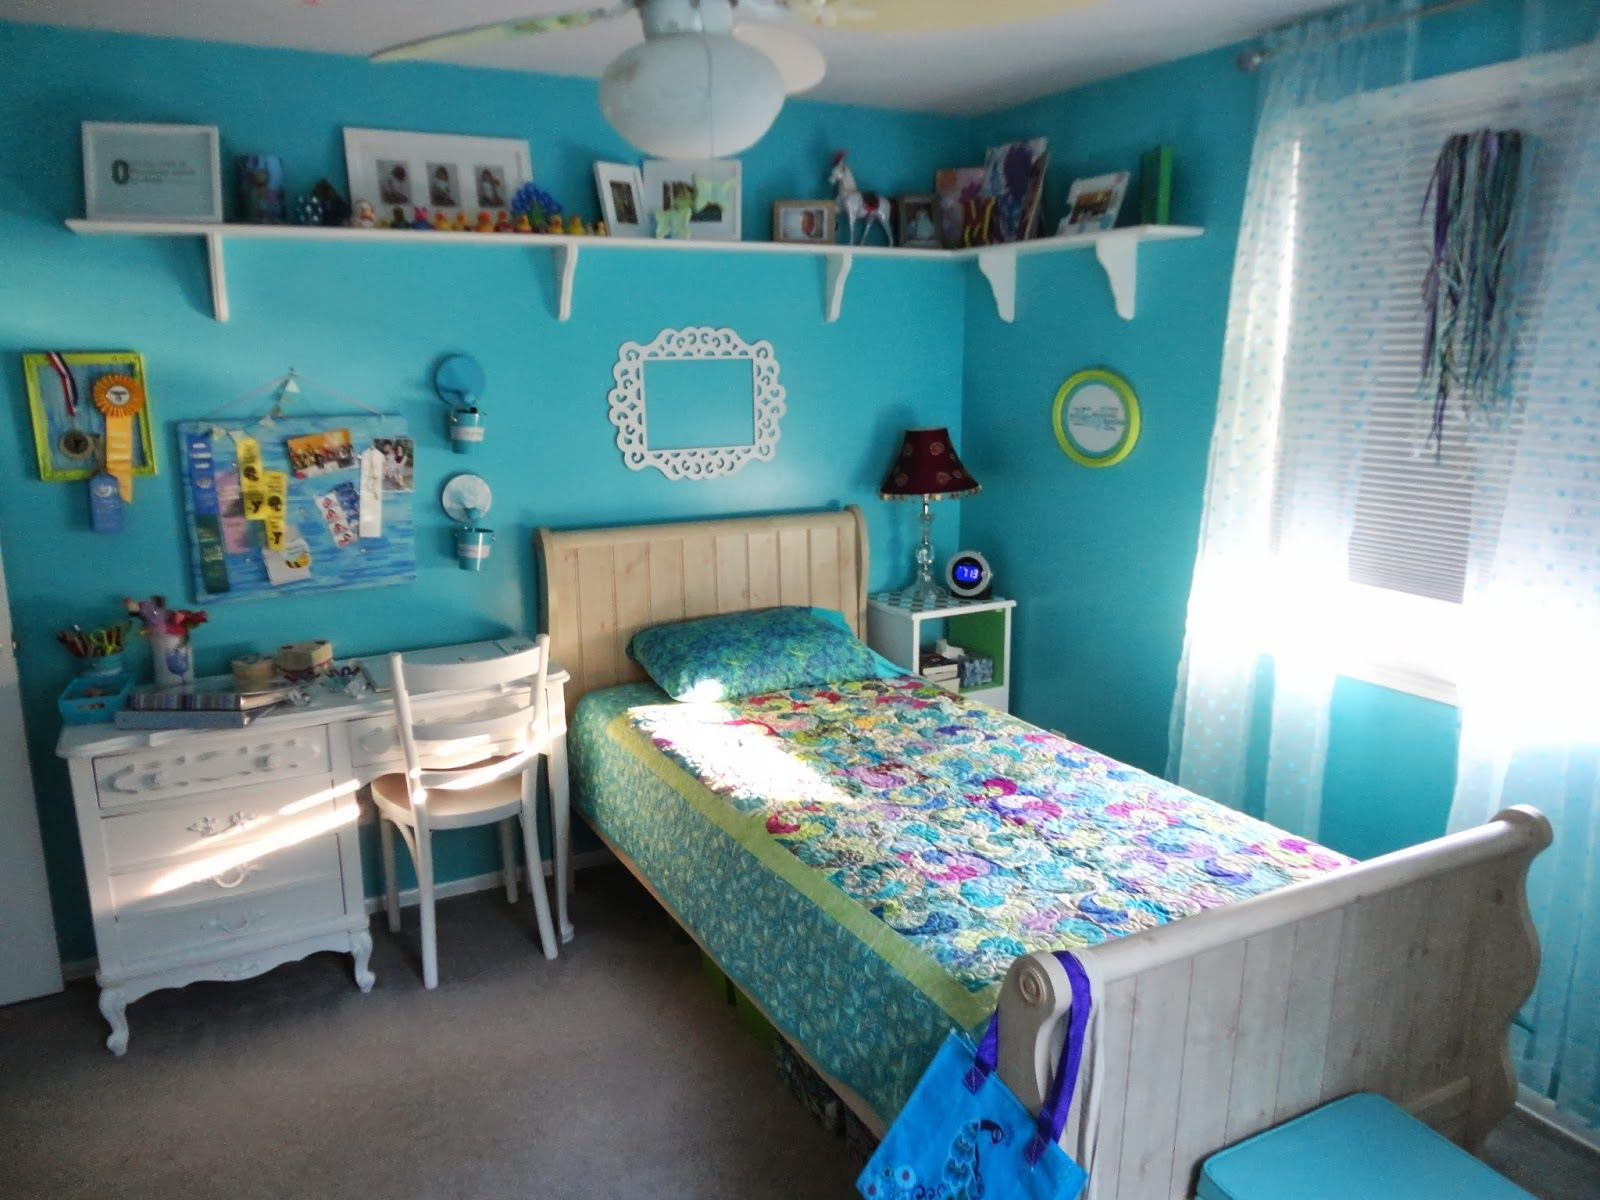 Teen / Tween Bedroom Ideas That are Fun and Cool